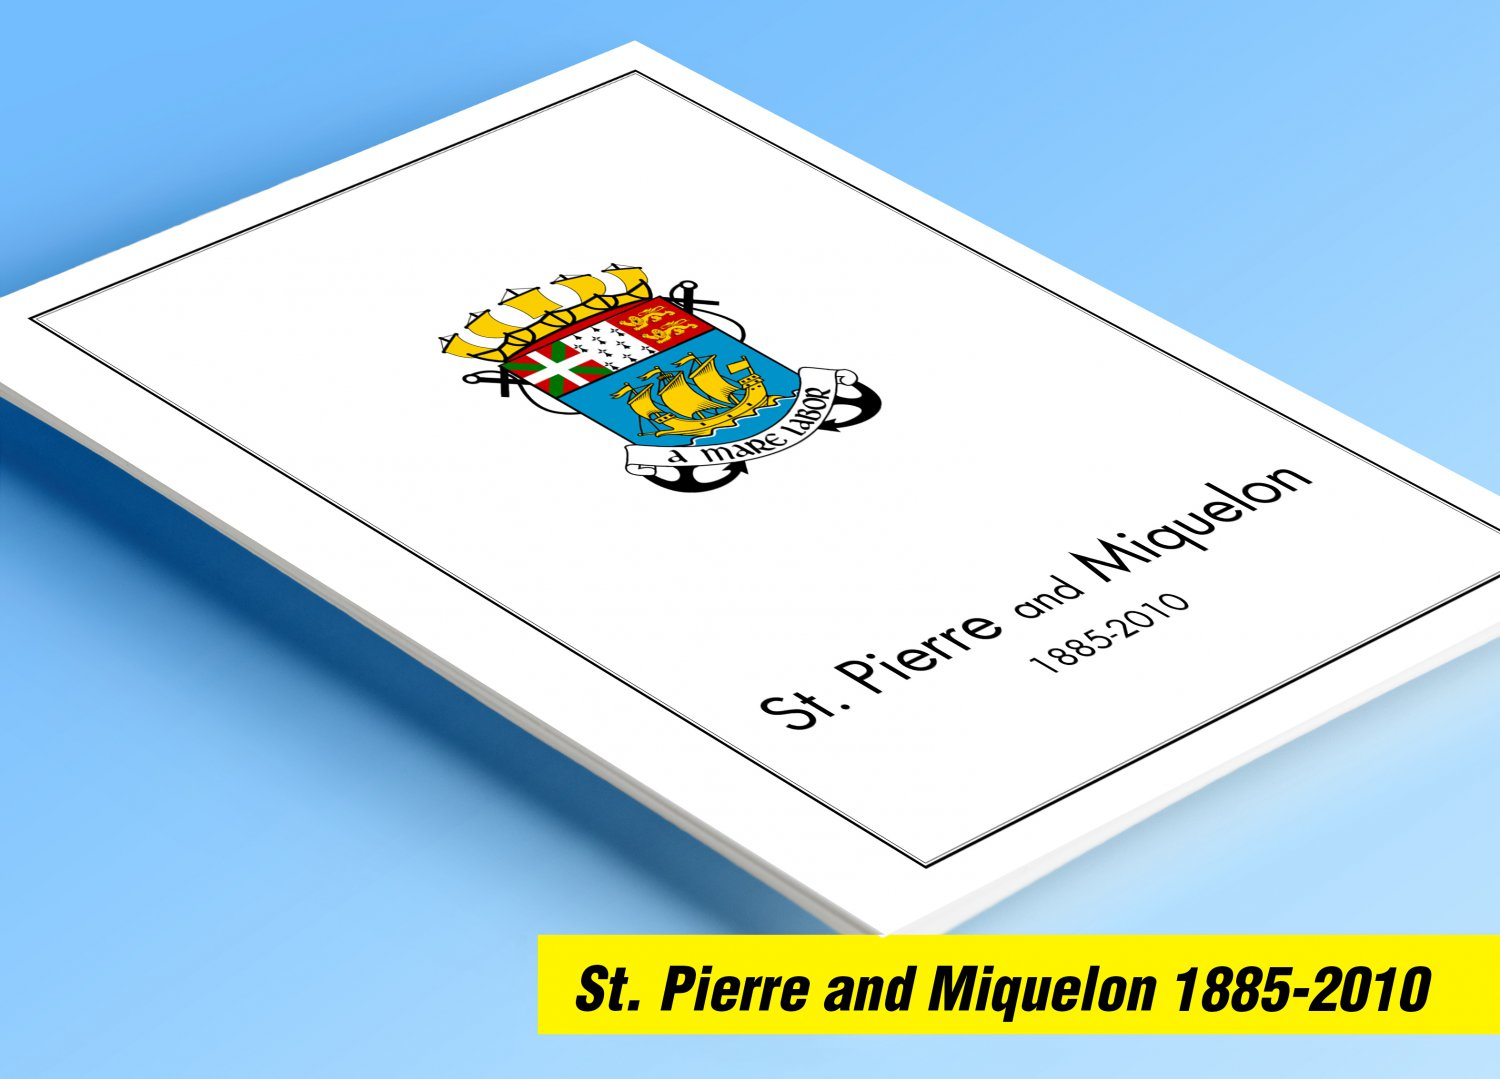 COLOR PRINTED ST PIERRE AND MIQUELON 1885-2010 STAMP ALBUM PAGES (123 illustrated pages)